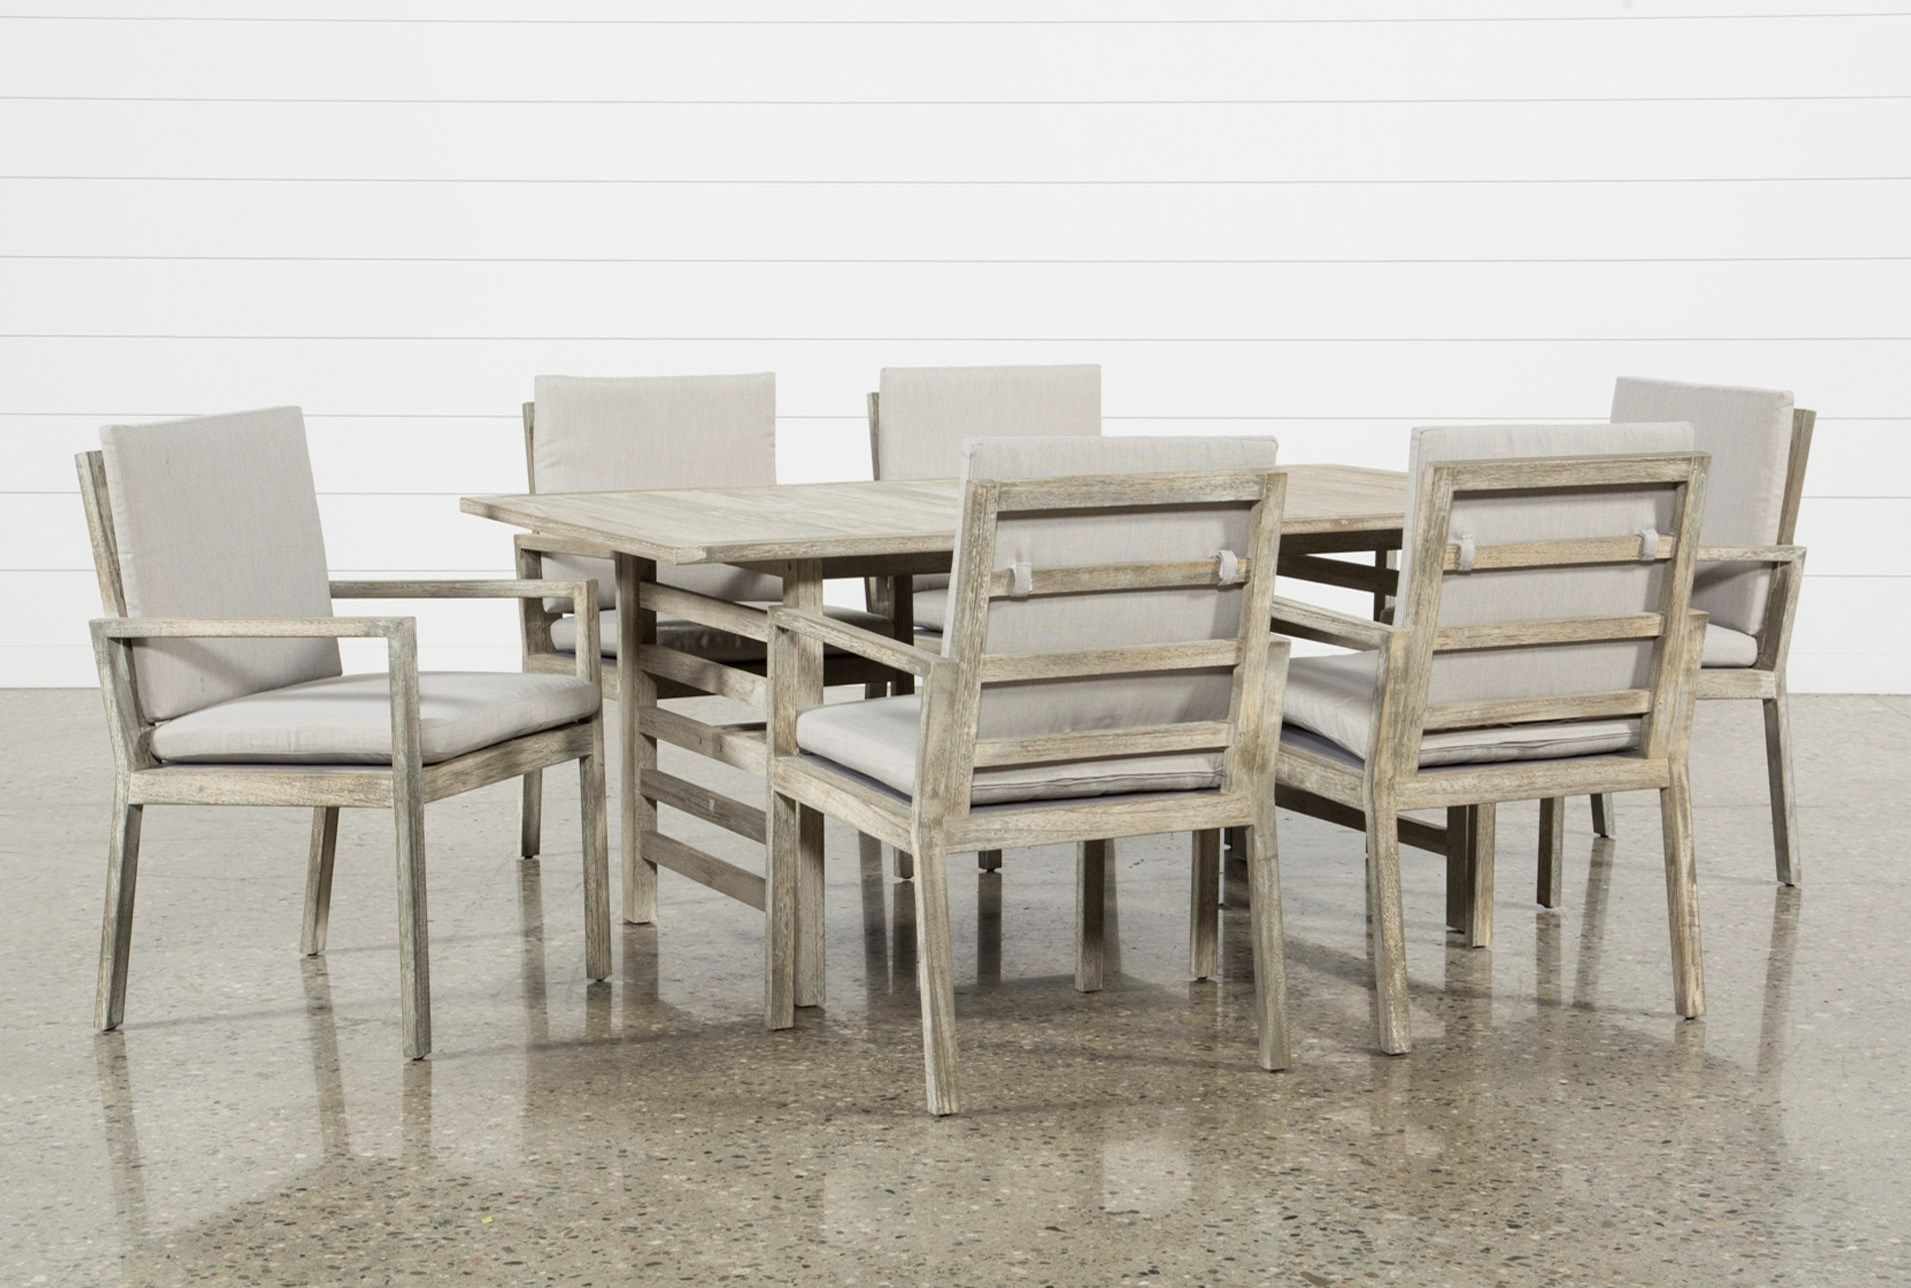 Outdoor Pompeii 7 Piece Dining Set, Grey | Pompeii, Dining And Intended For Most Recent Logan 7 Piece Dining Sets (Image 13 of 20)